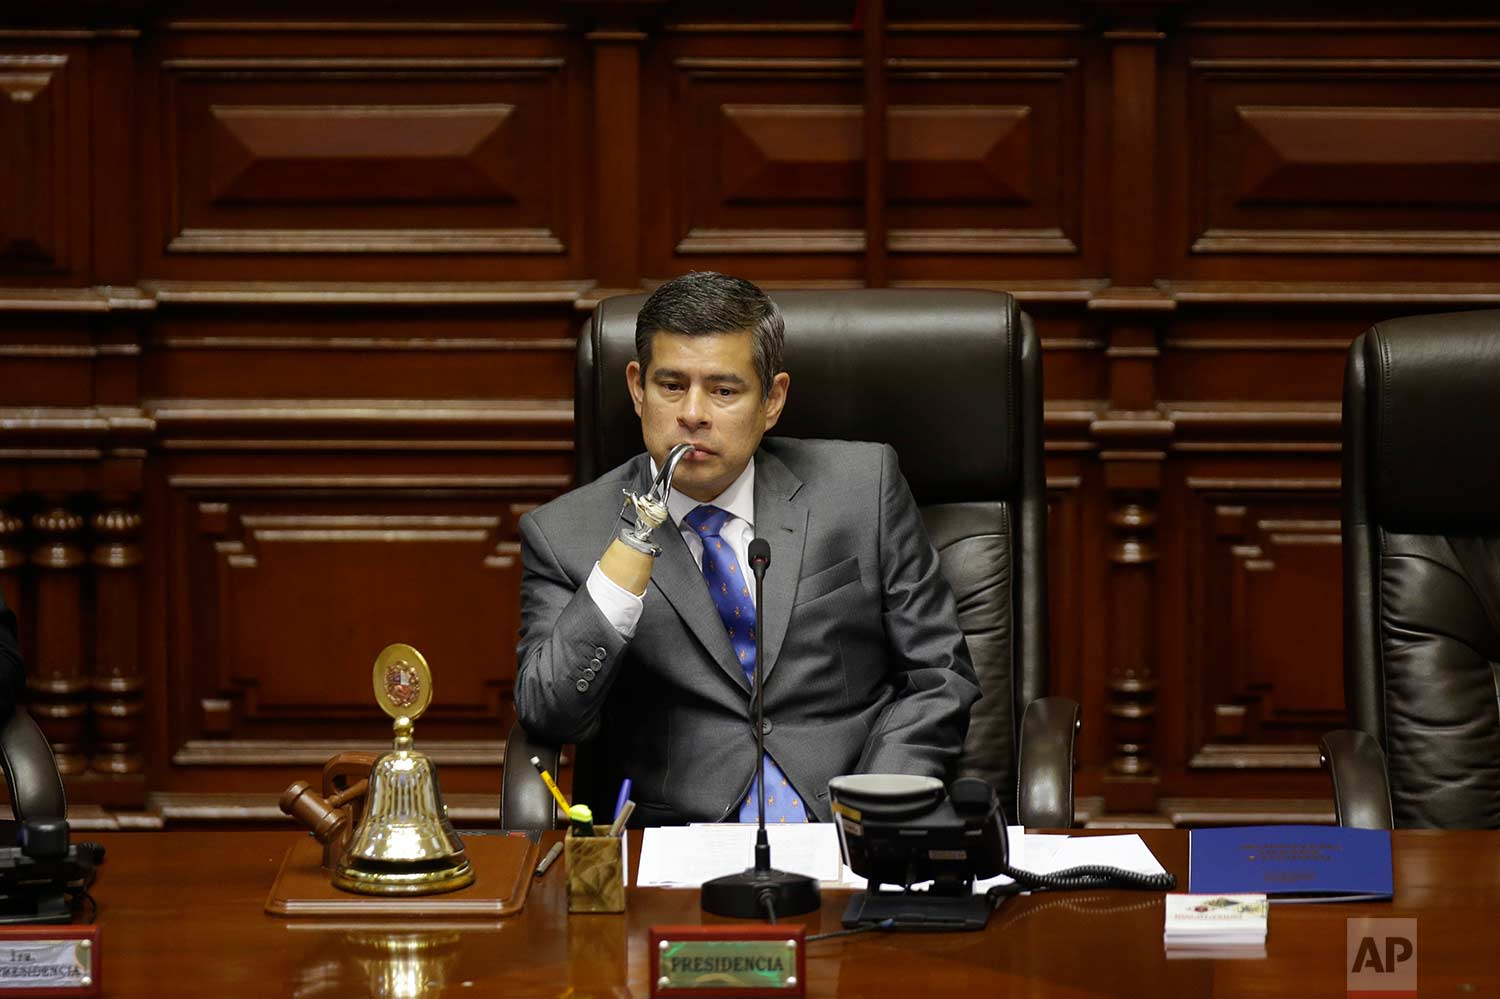 National Congress President Luis Galarreta presides over a special session on whether to initiate impeachment proceeding against the country's president, in Lima, Peru, Friday, Dec. 15, 2017. (AP Photo/Martin Mejia)